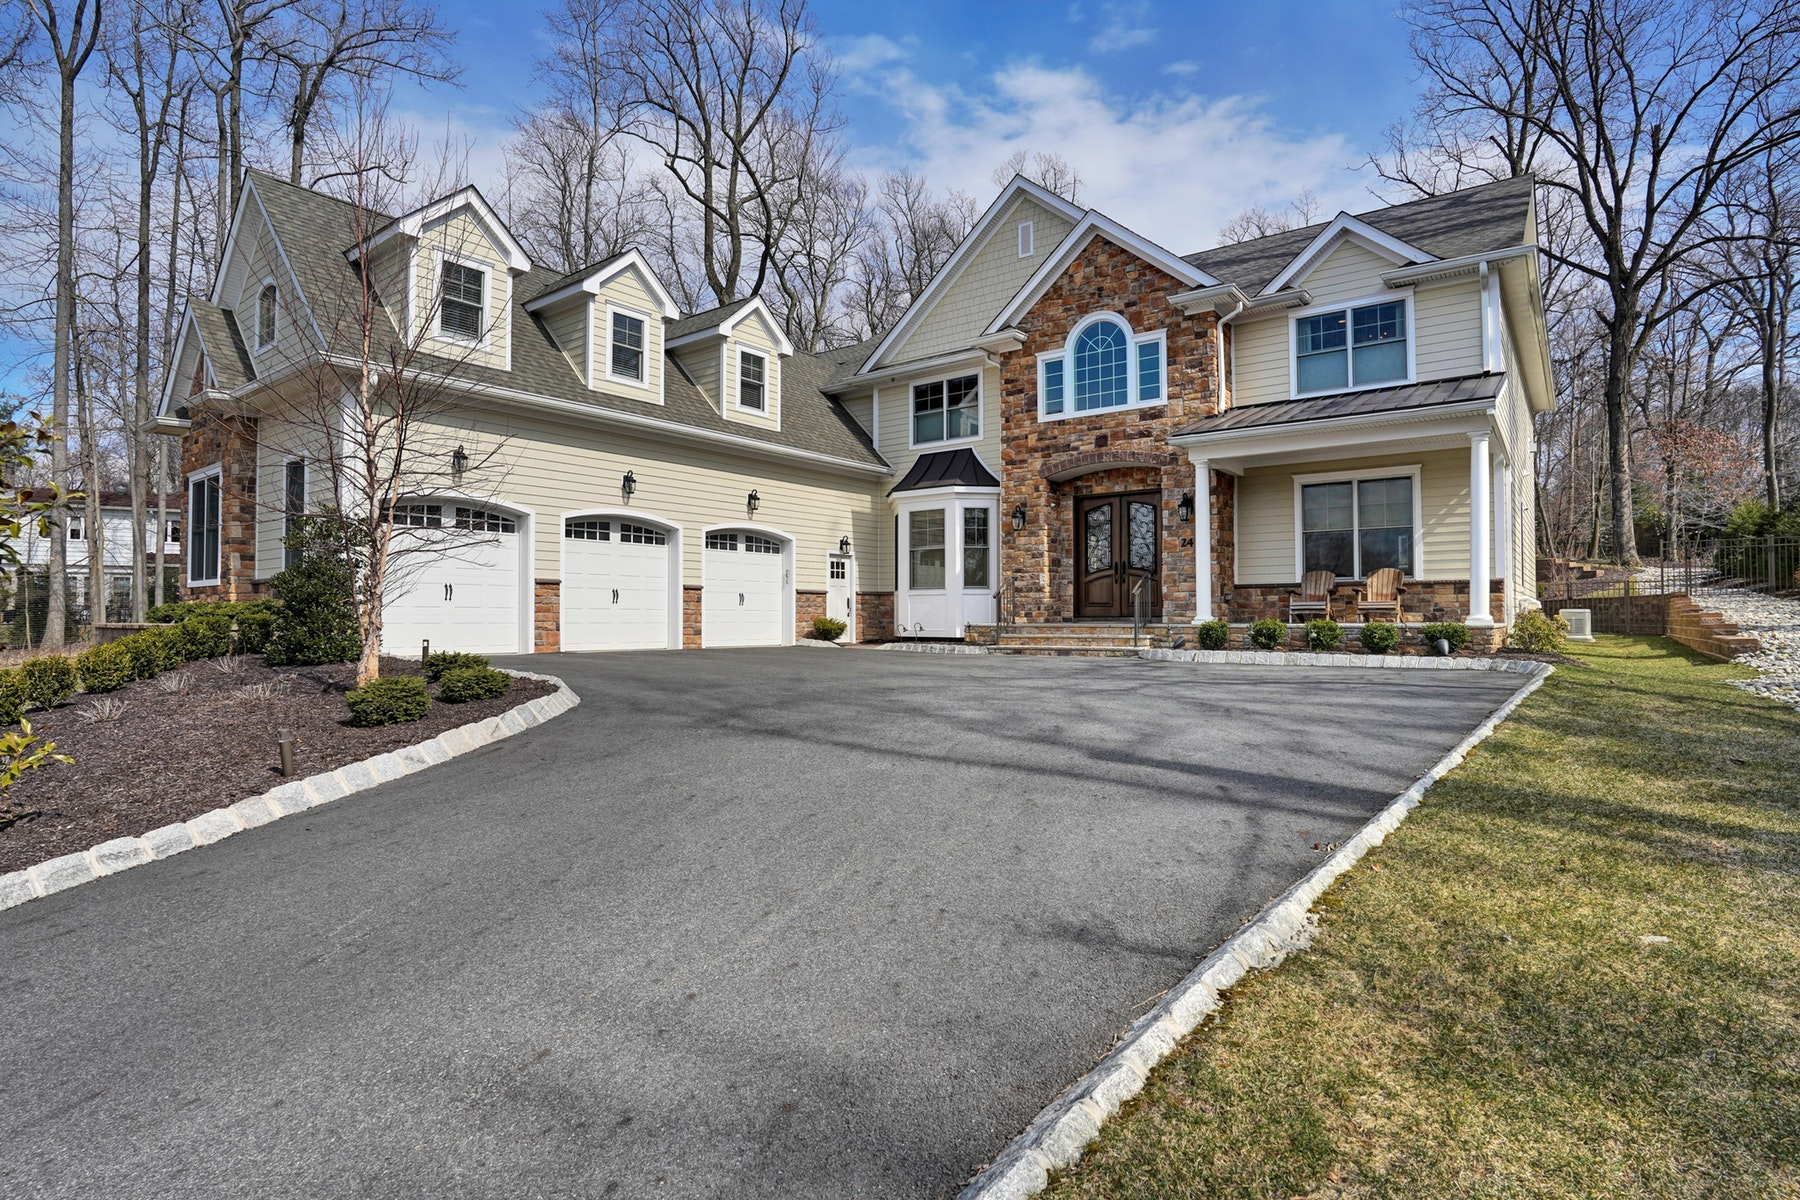 Single Family Homes for Sale at Over 5,500 SQ FT of Luxury 24 Shenandoah Dr North Caldwell, New Jersey 07006 United States